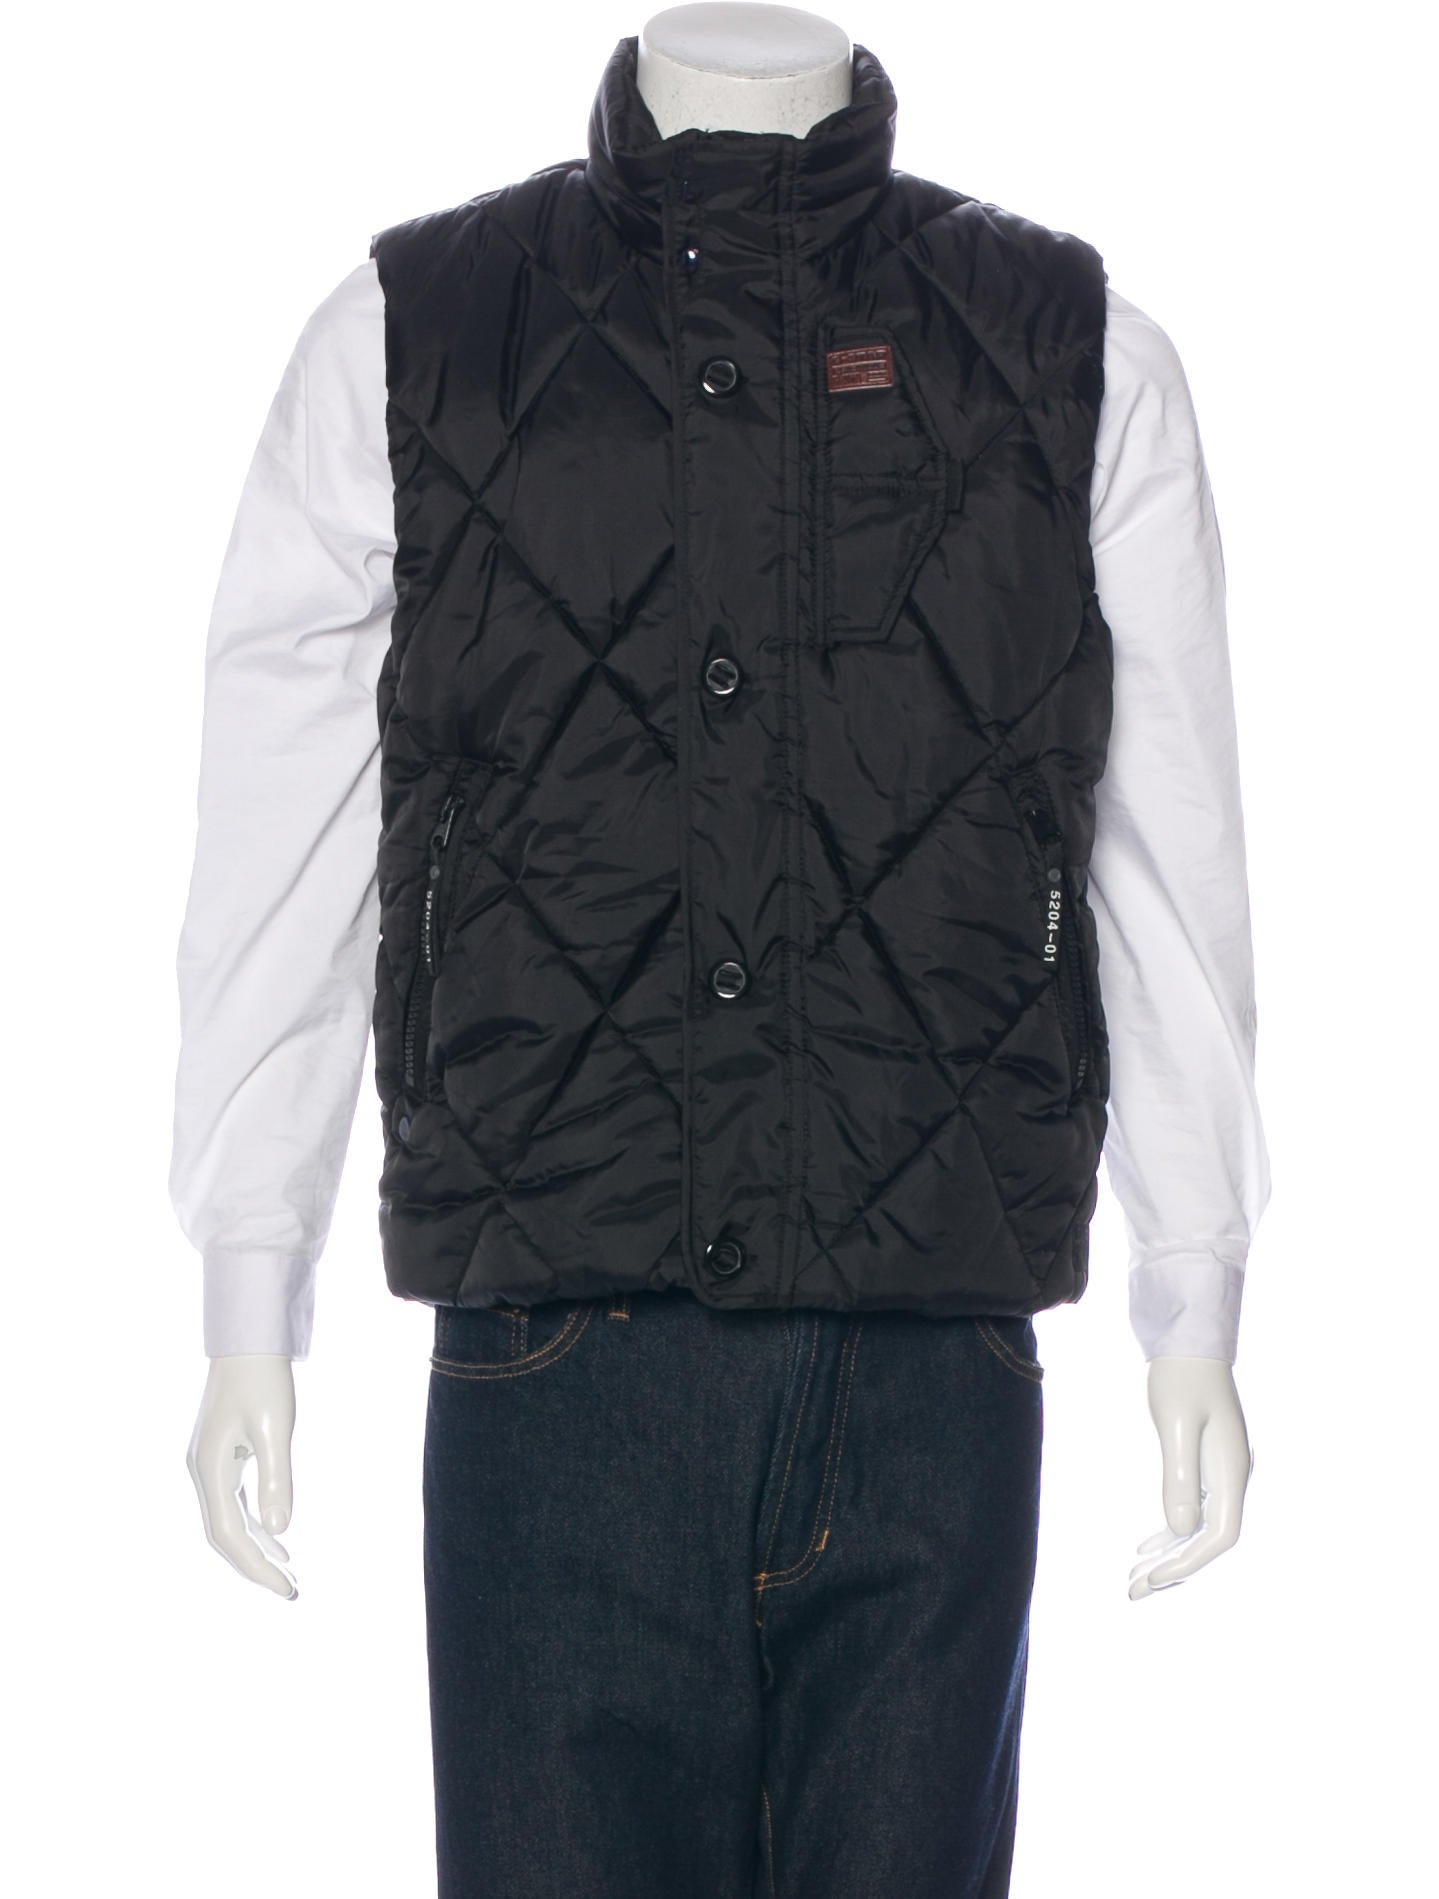 g star raw doonray quilted vest clothing wgsrw20074 the realreal. Black Bedroom Furniture Sets. Home Design Ideas